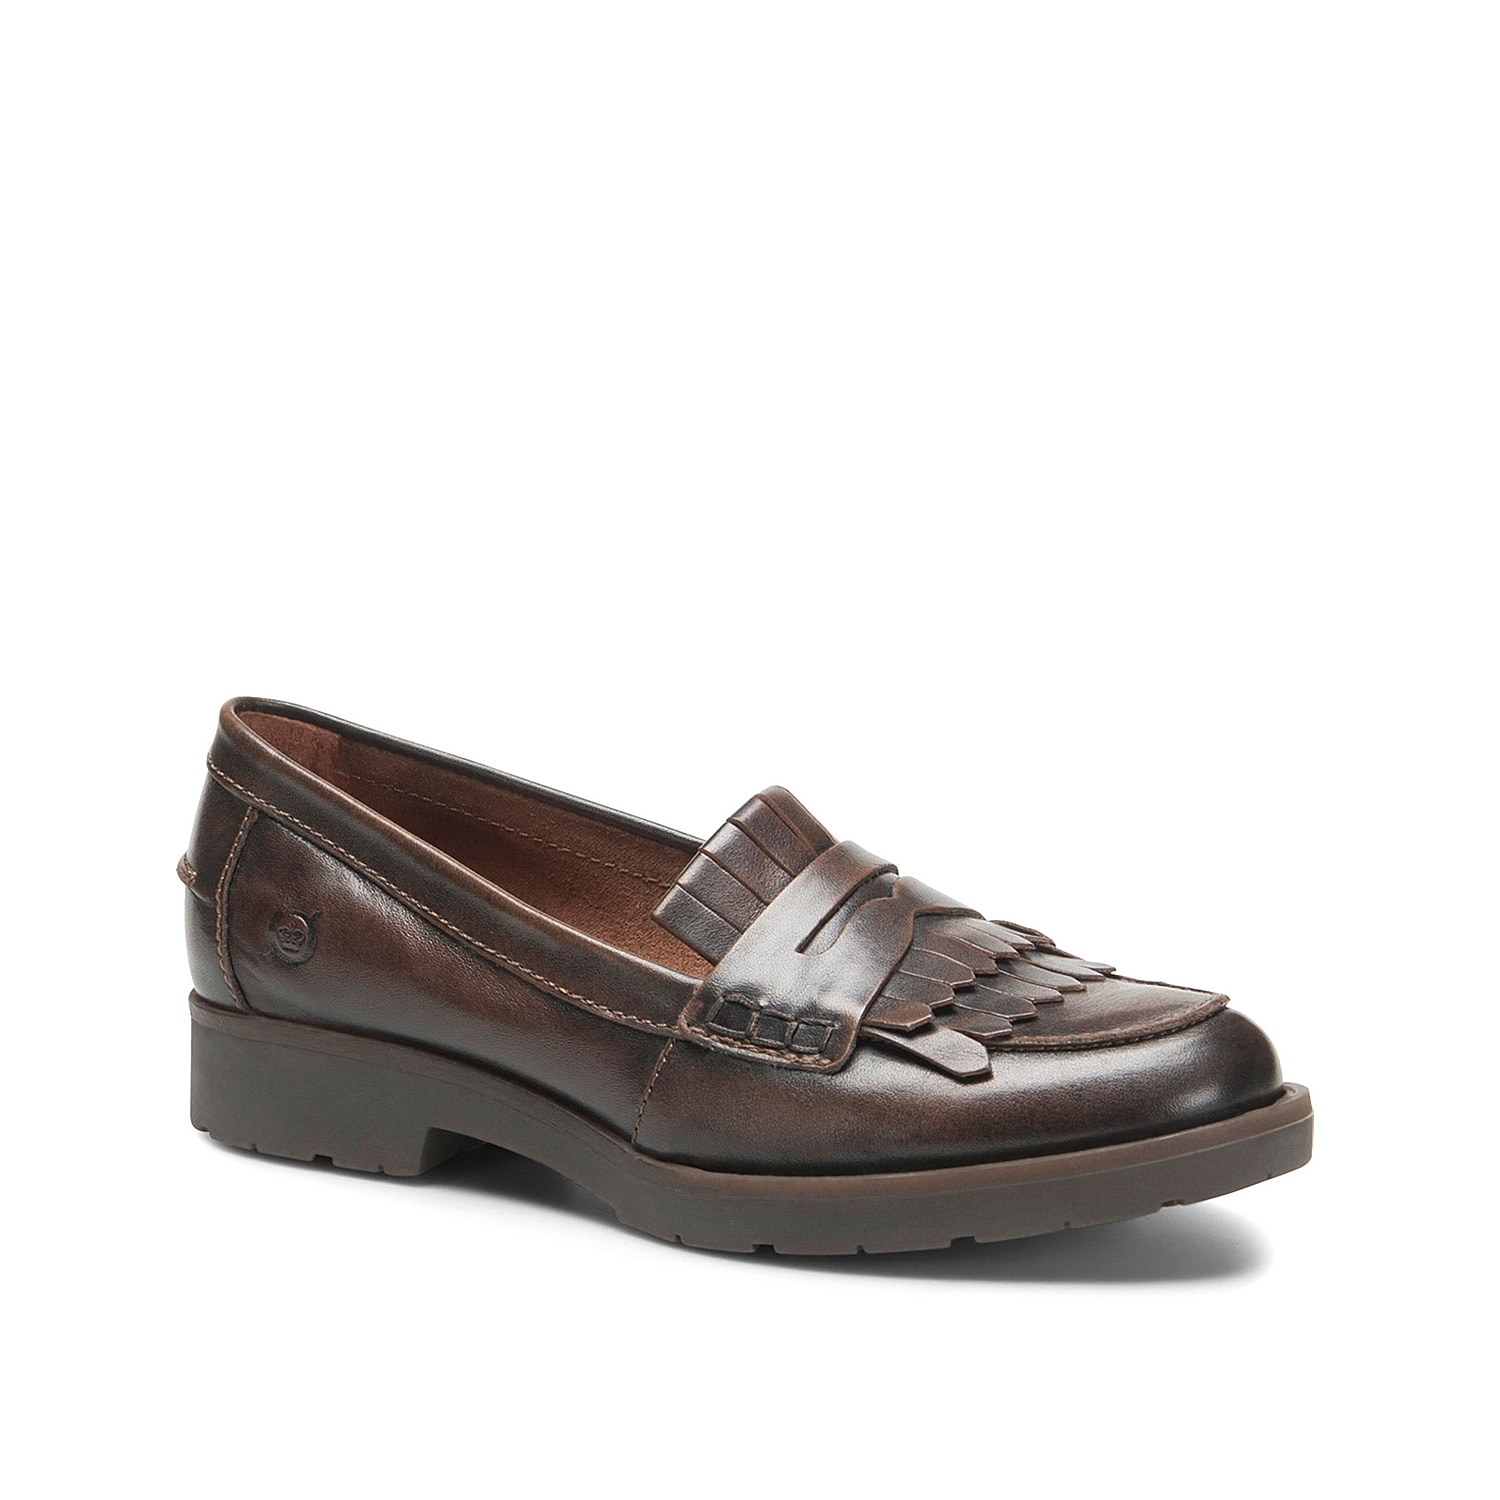 Feel refined in the Lorens penny loafer from Born. These leather slip-ons feature a classic kiltie accent and molded block heel that add eye-catching enticement to cropped slacks or a knee-high skirt.